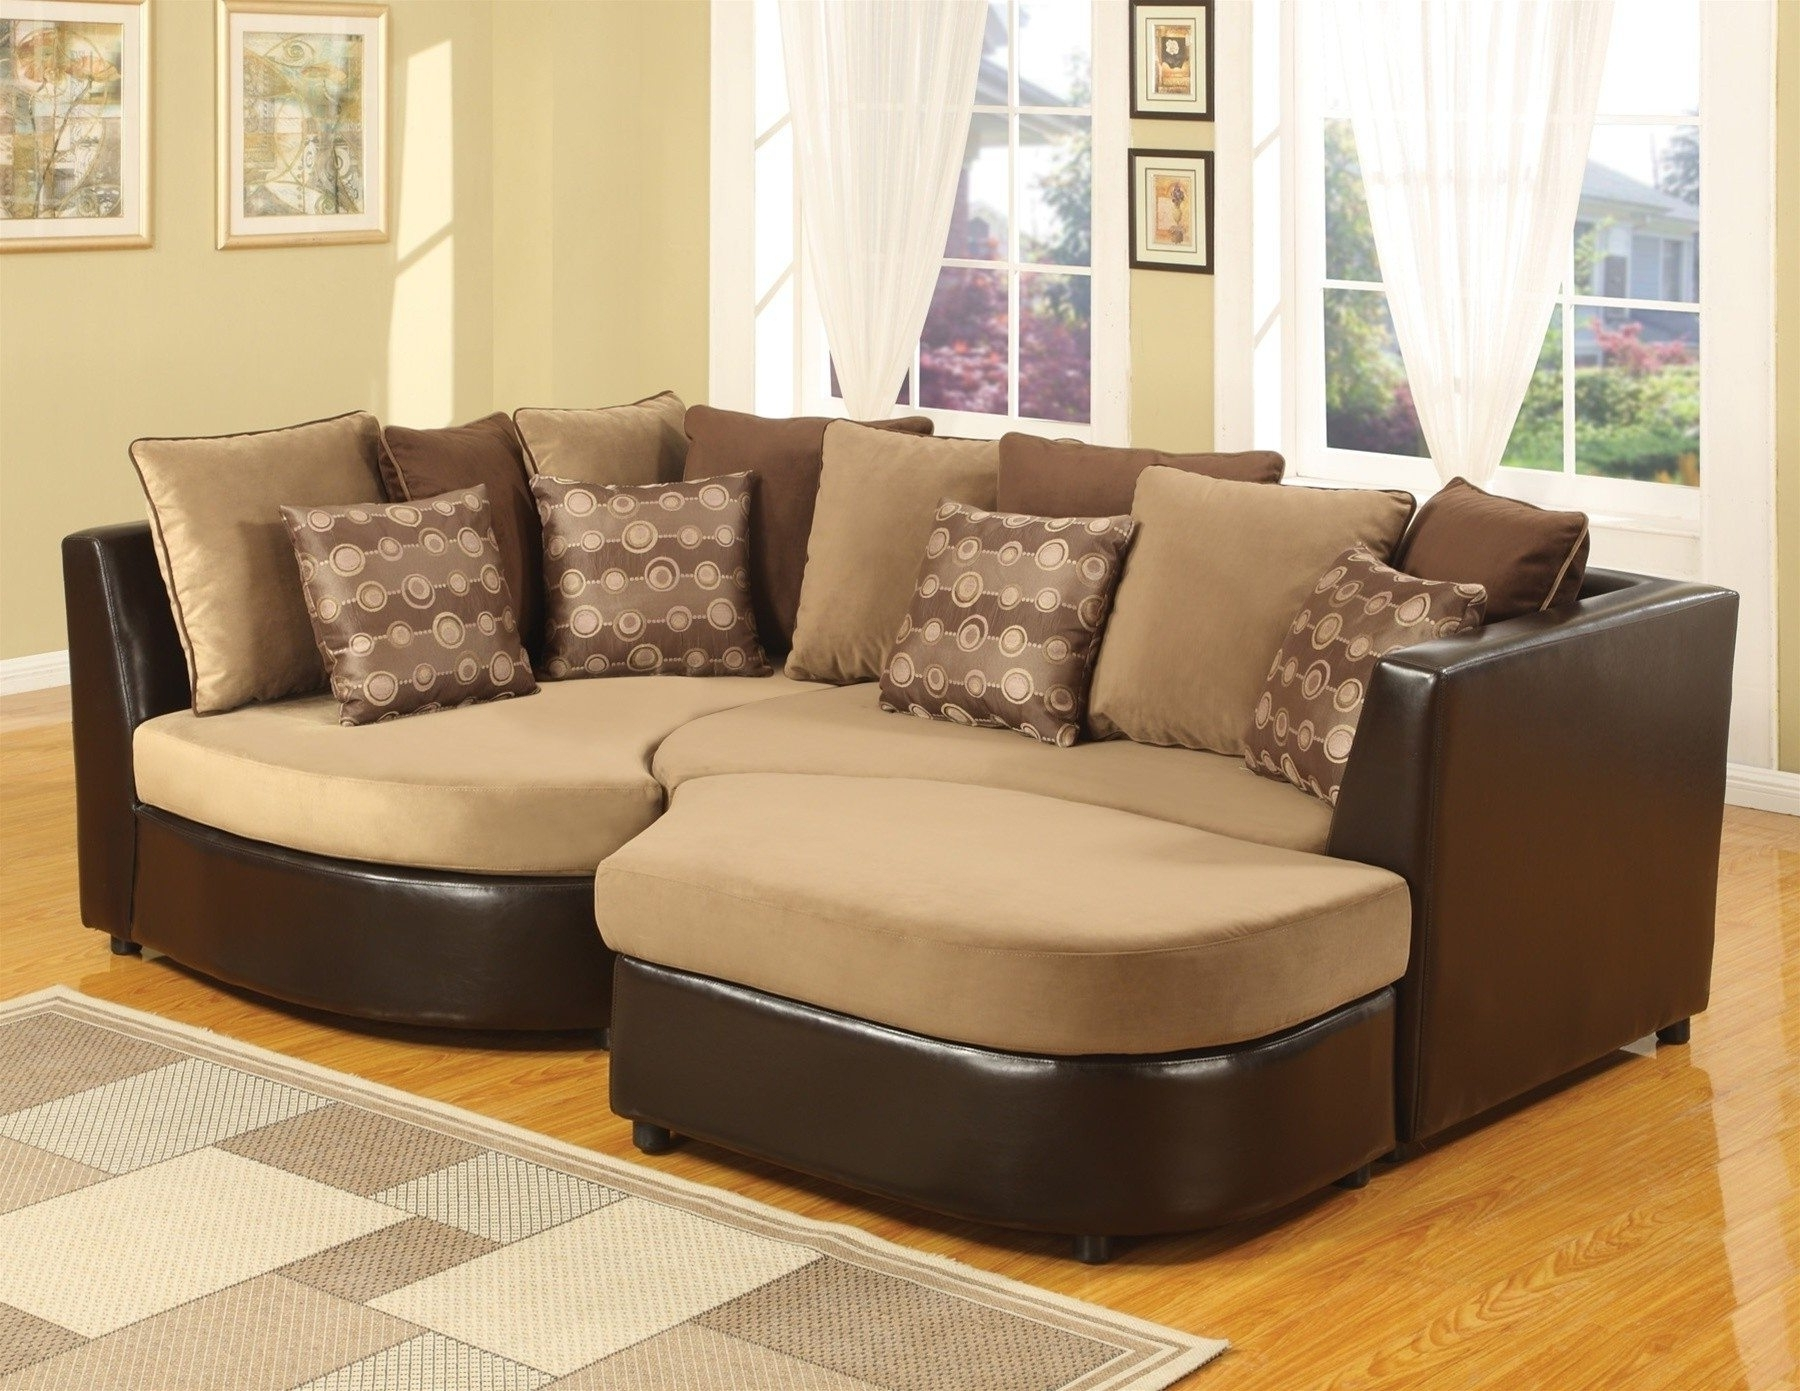 Well Liked Microfiber Sectional Sofas With Chaise Intended For Sofa ~ Wonderful Oversized Sectionals Sofa (View 13 of 15)